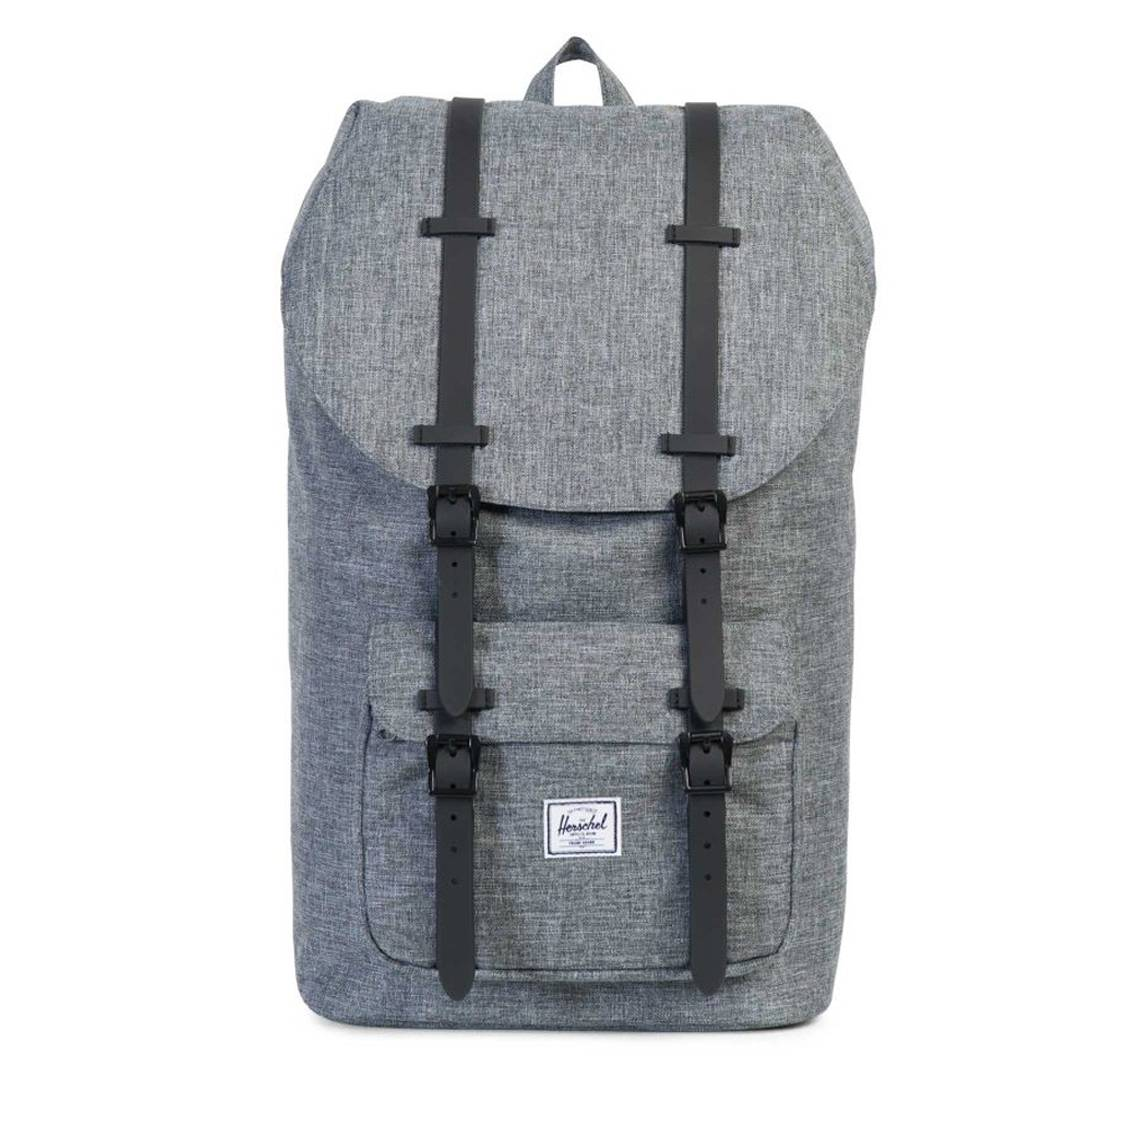 sac dos 25 l little america herschel gris sangles noires compartiment ordinateur 15 pouces. Black Bedroom Furniture Sets. Home Design Ideas